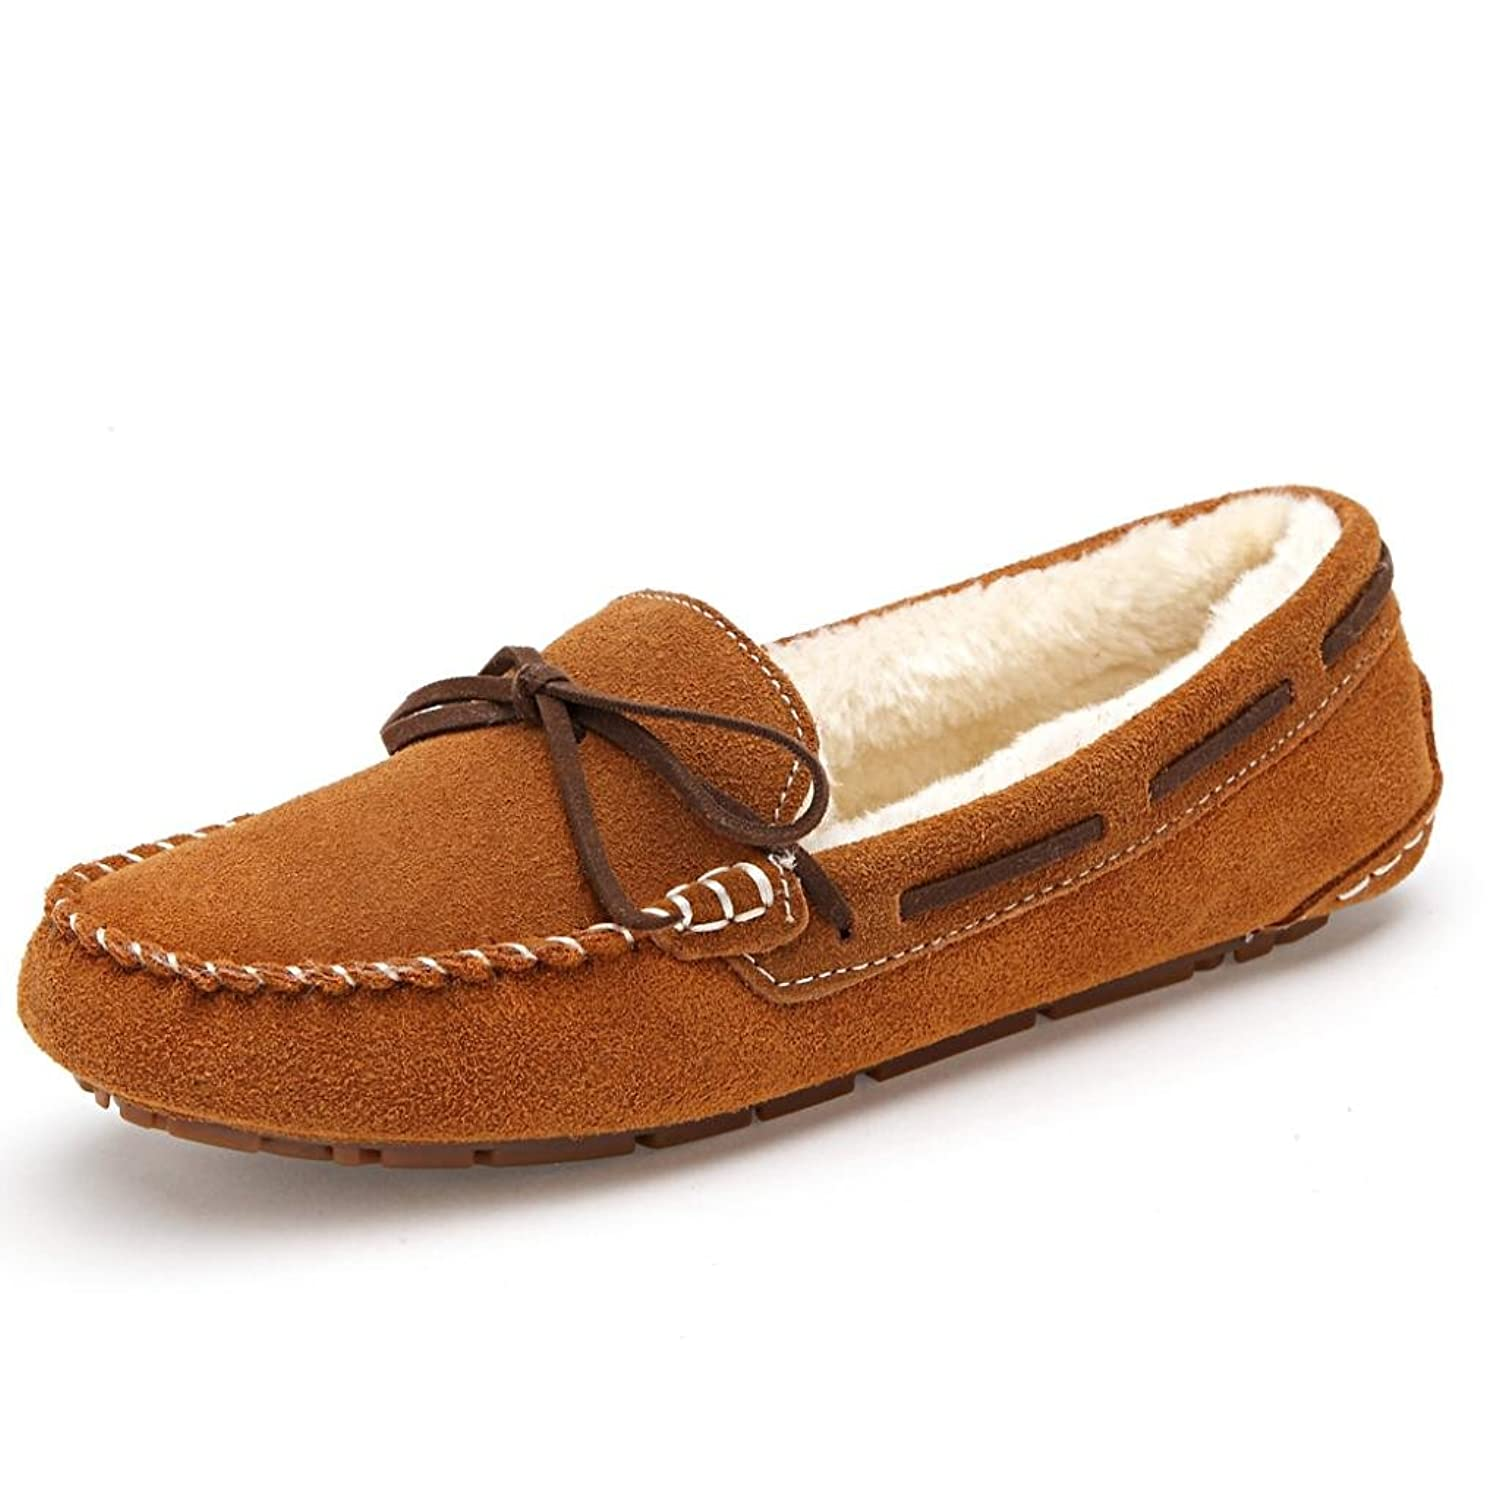 SUNROLAN Women's Winter Flats Suede House Slipper Fur-Lined Moccasins